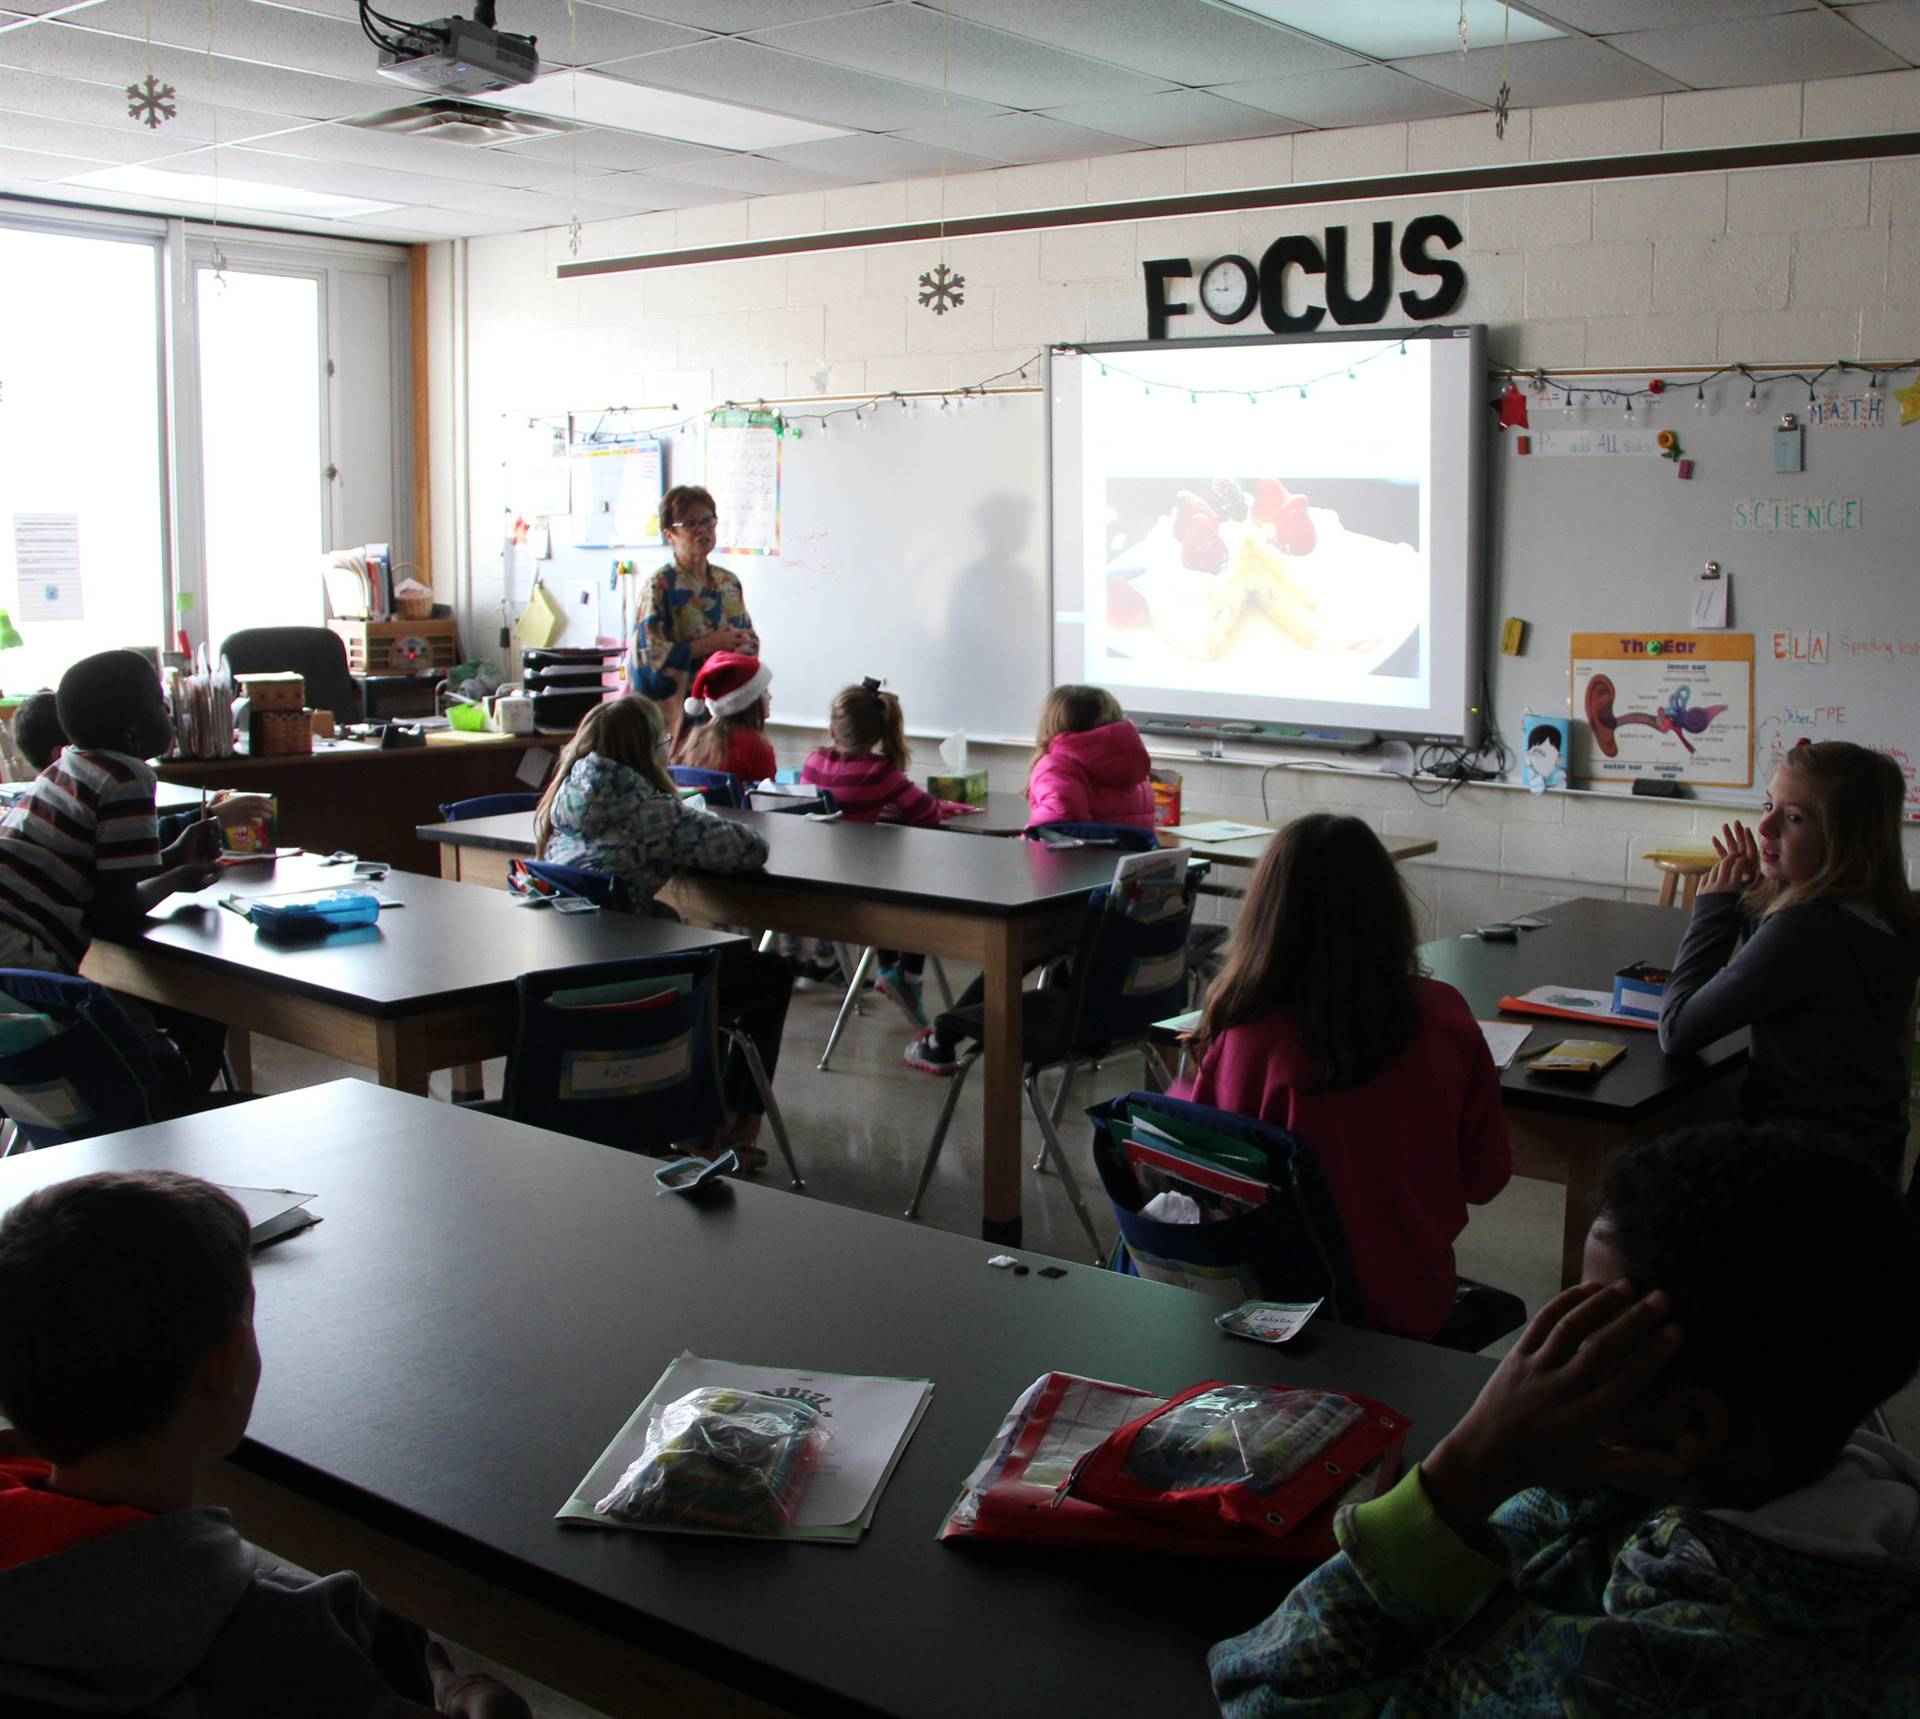 teacher showing students powerpoint